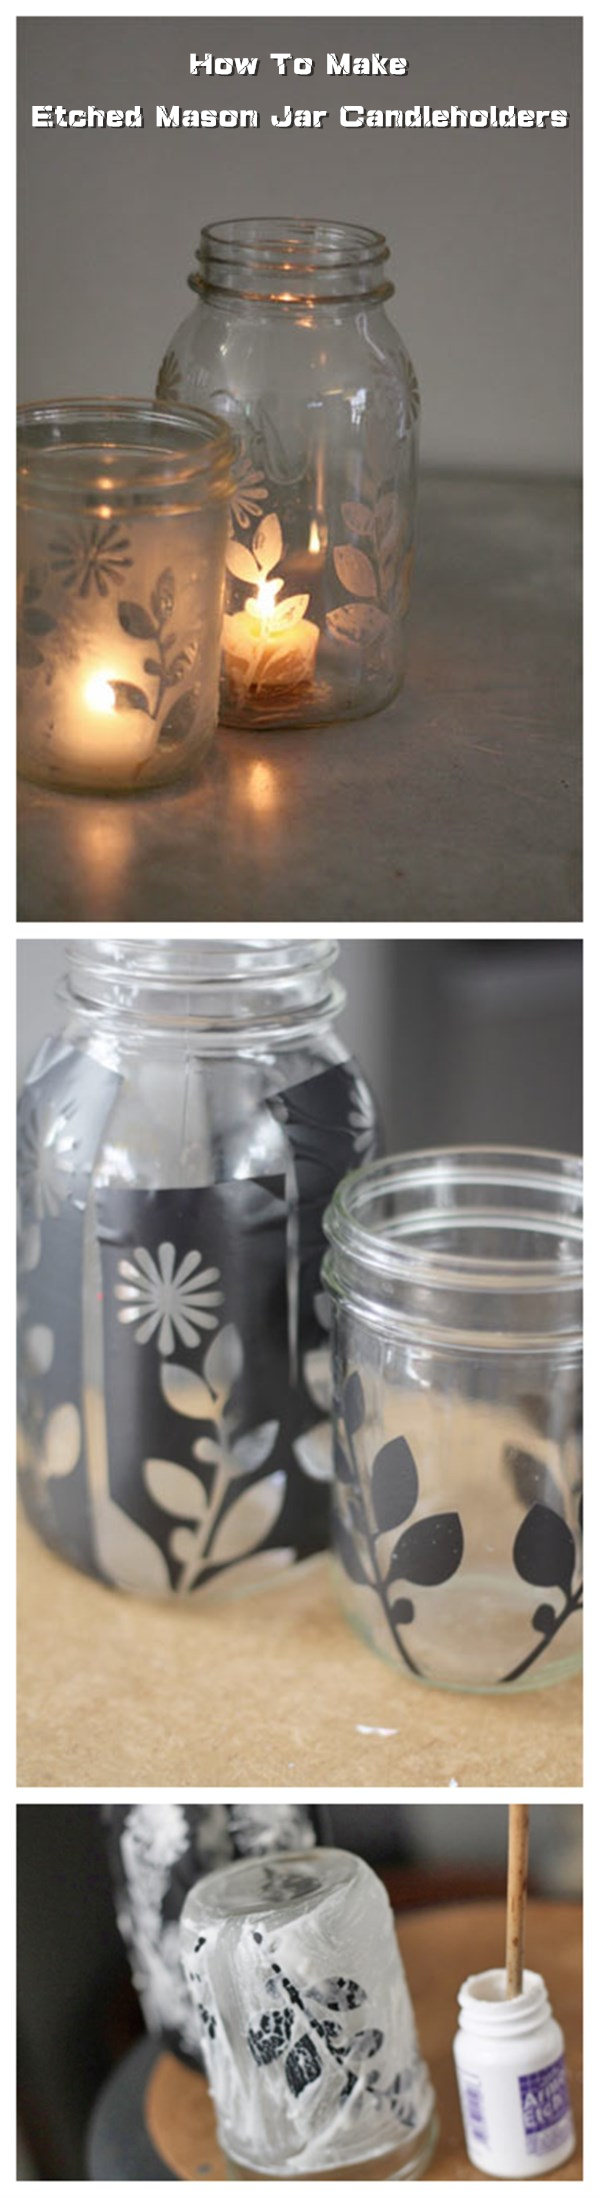 How To Make Etched Mason Jar Candleholders